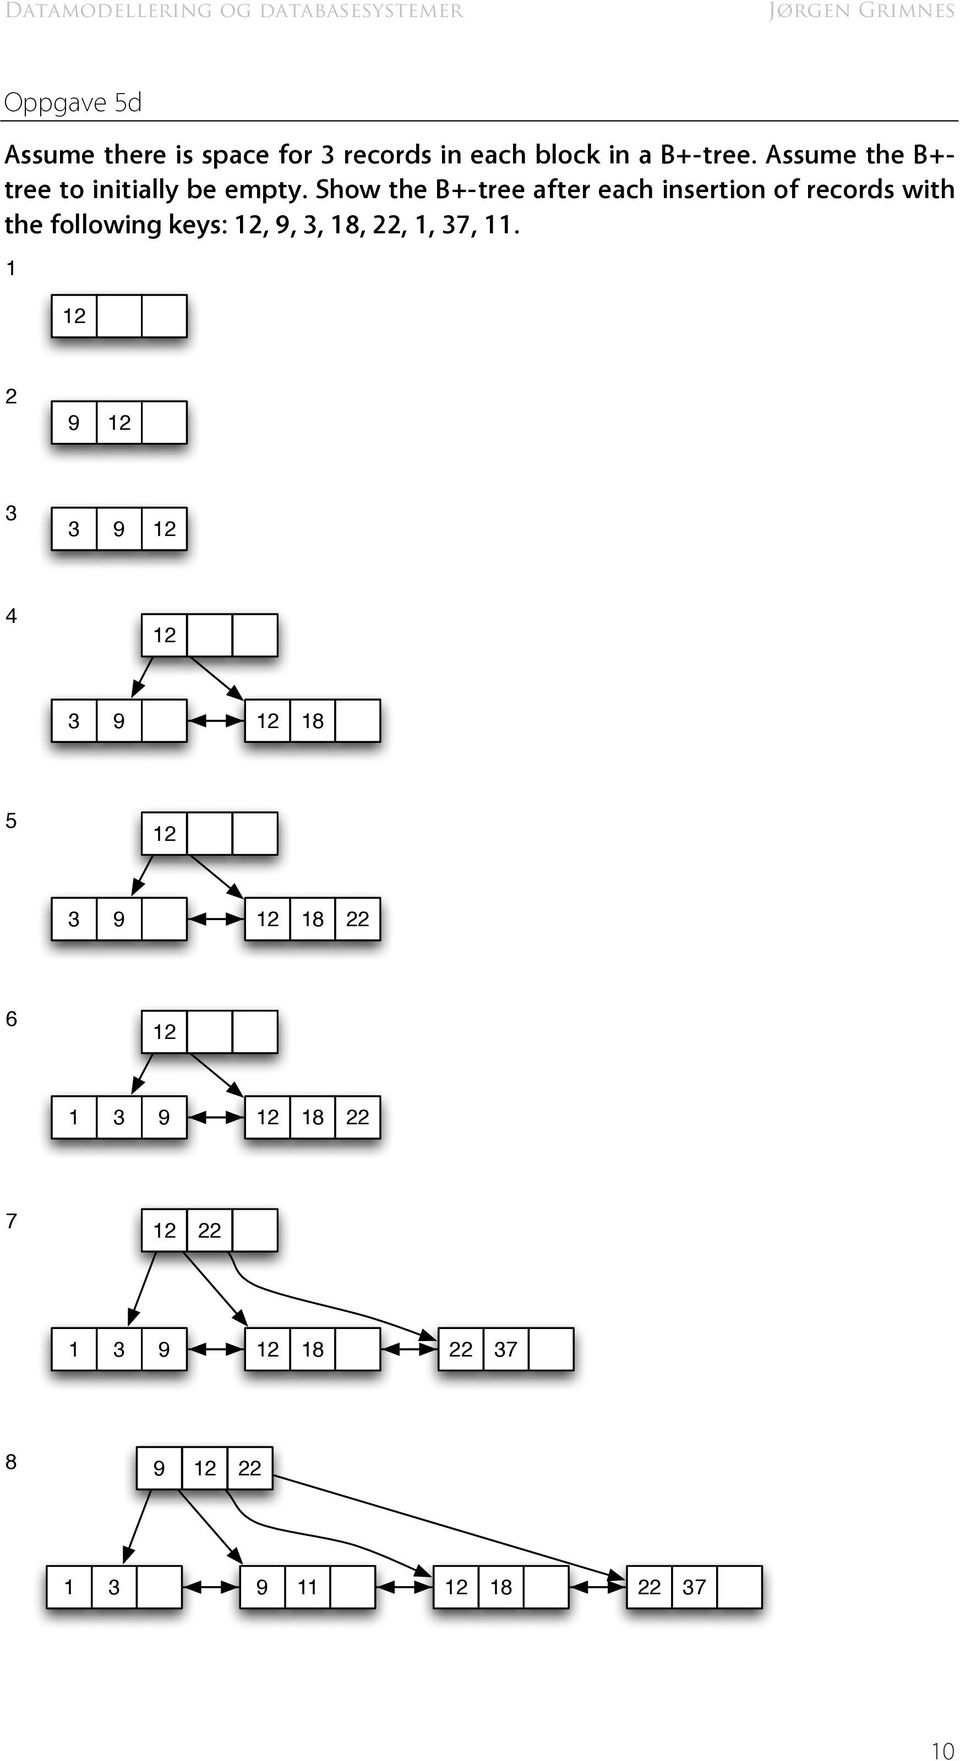 Show the B+-tree after each insertion of records with the